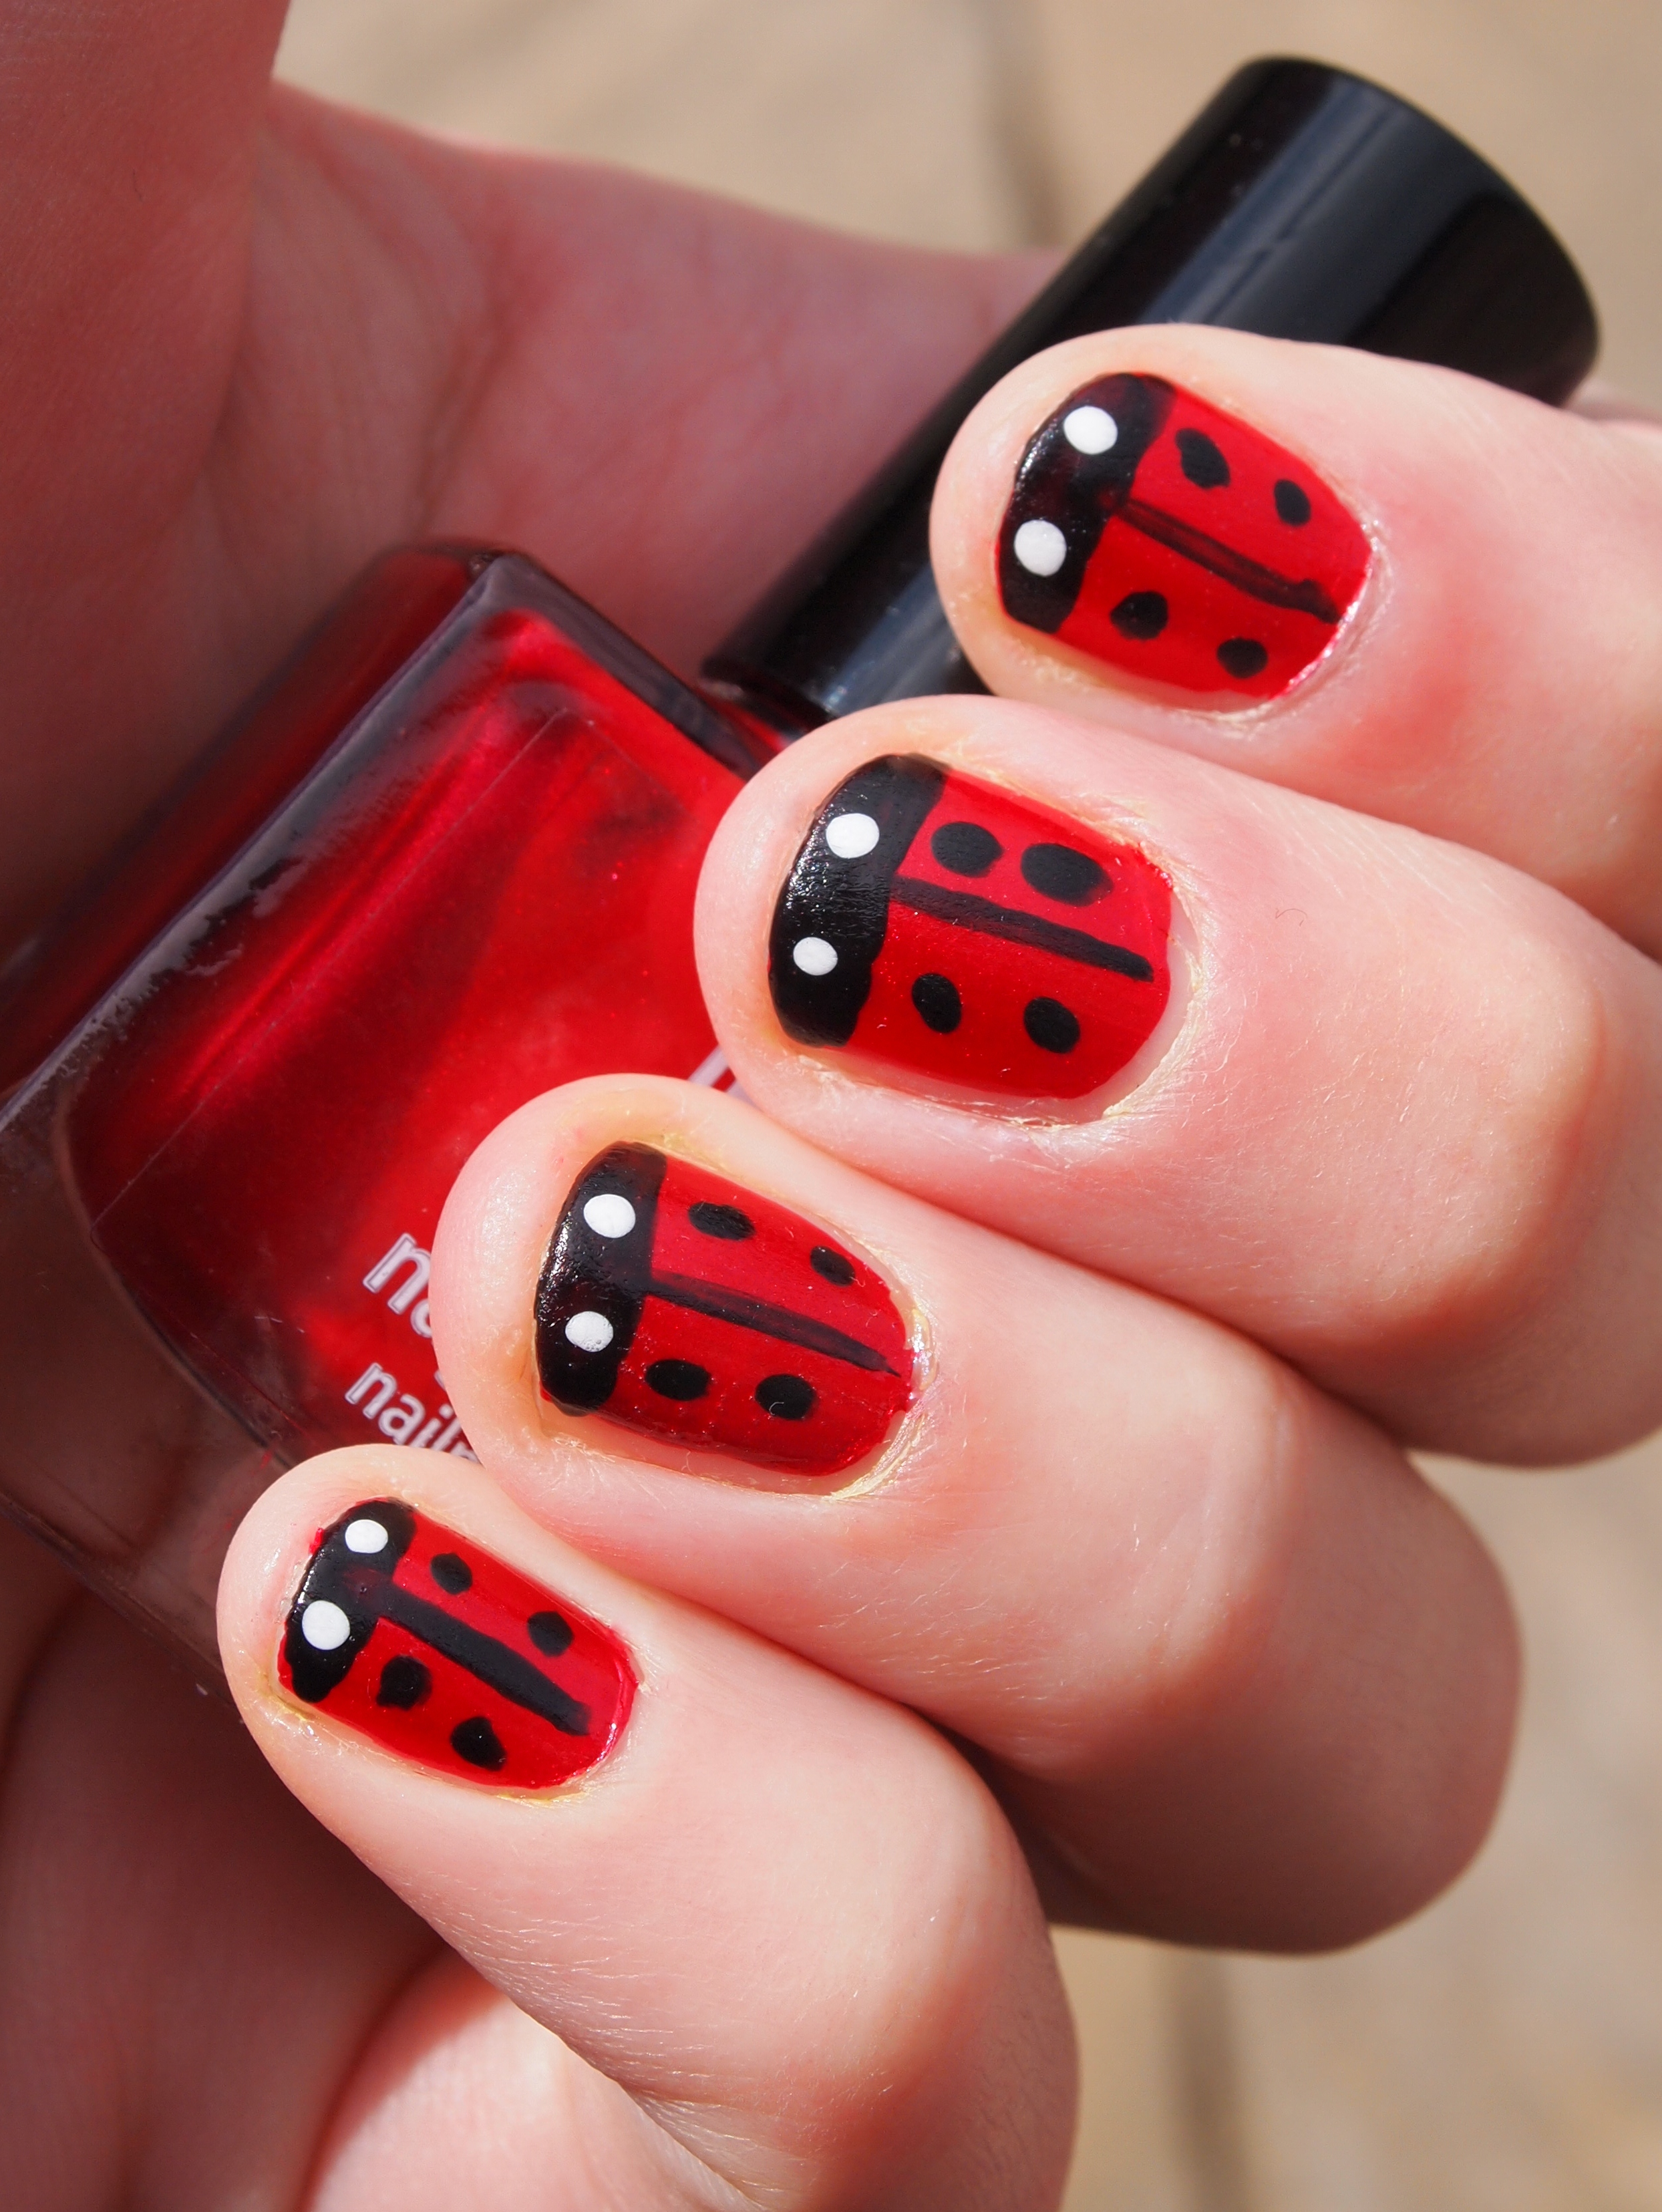 Cute black and red nail designs